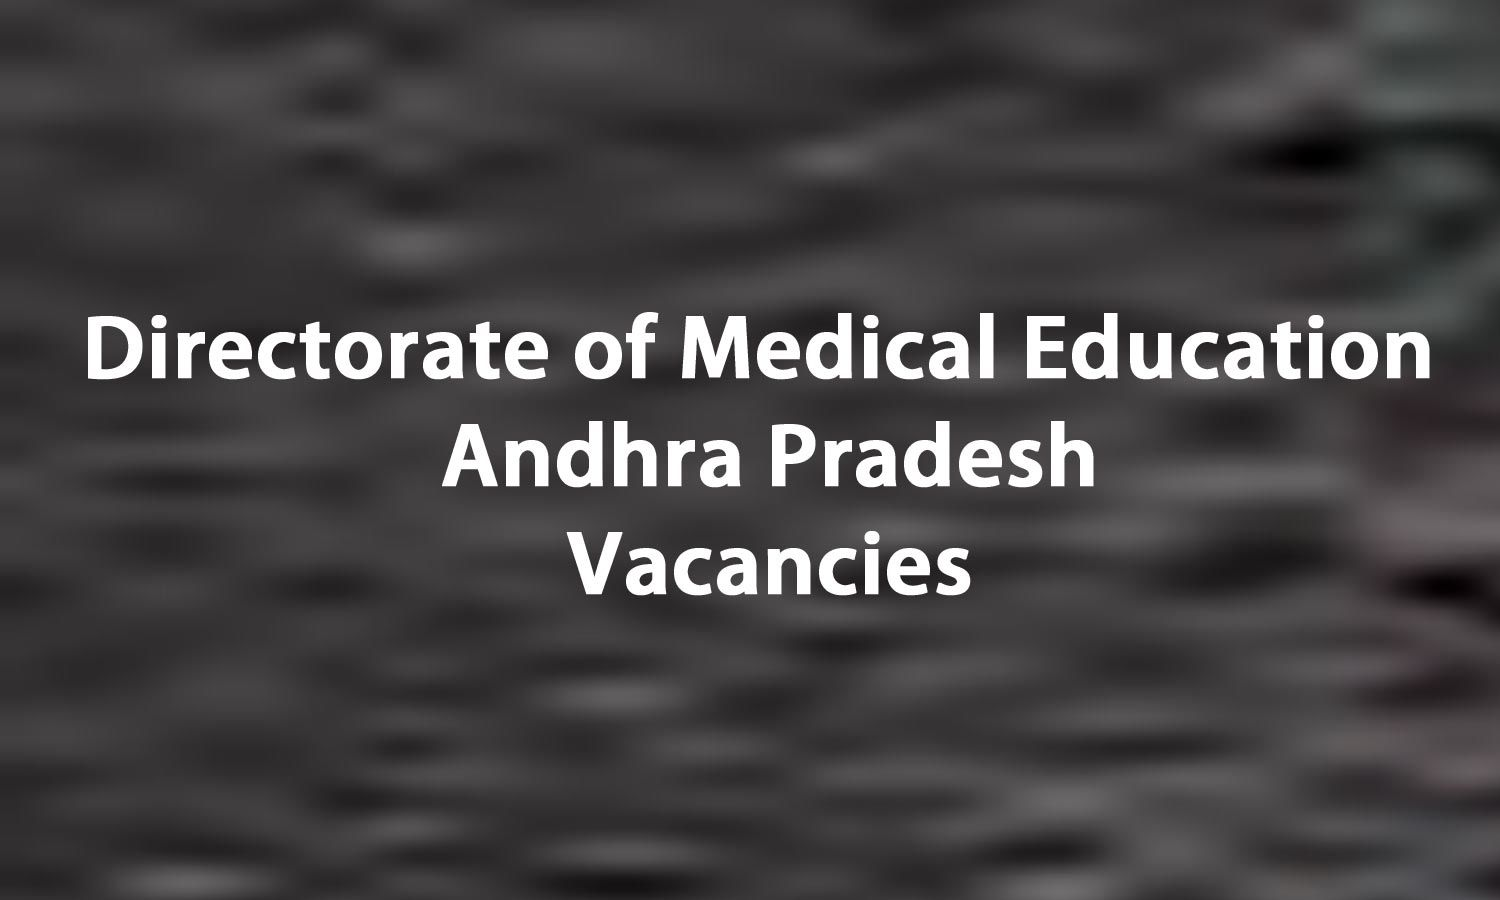 DME Andhra Pradesh Releases 550 Vacancies For General Duty Medical Officers Post At COVID 19 Hospitals